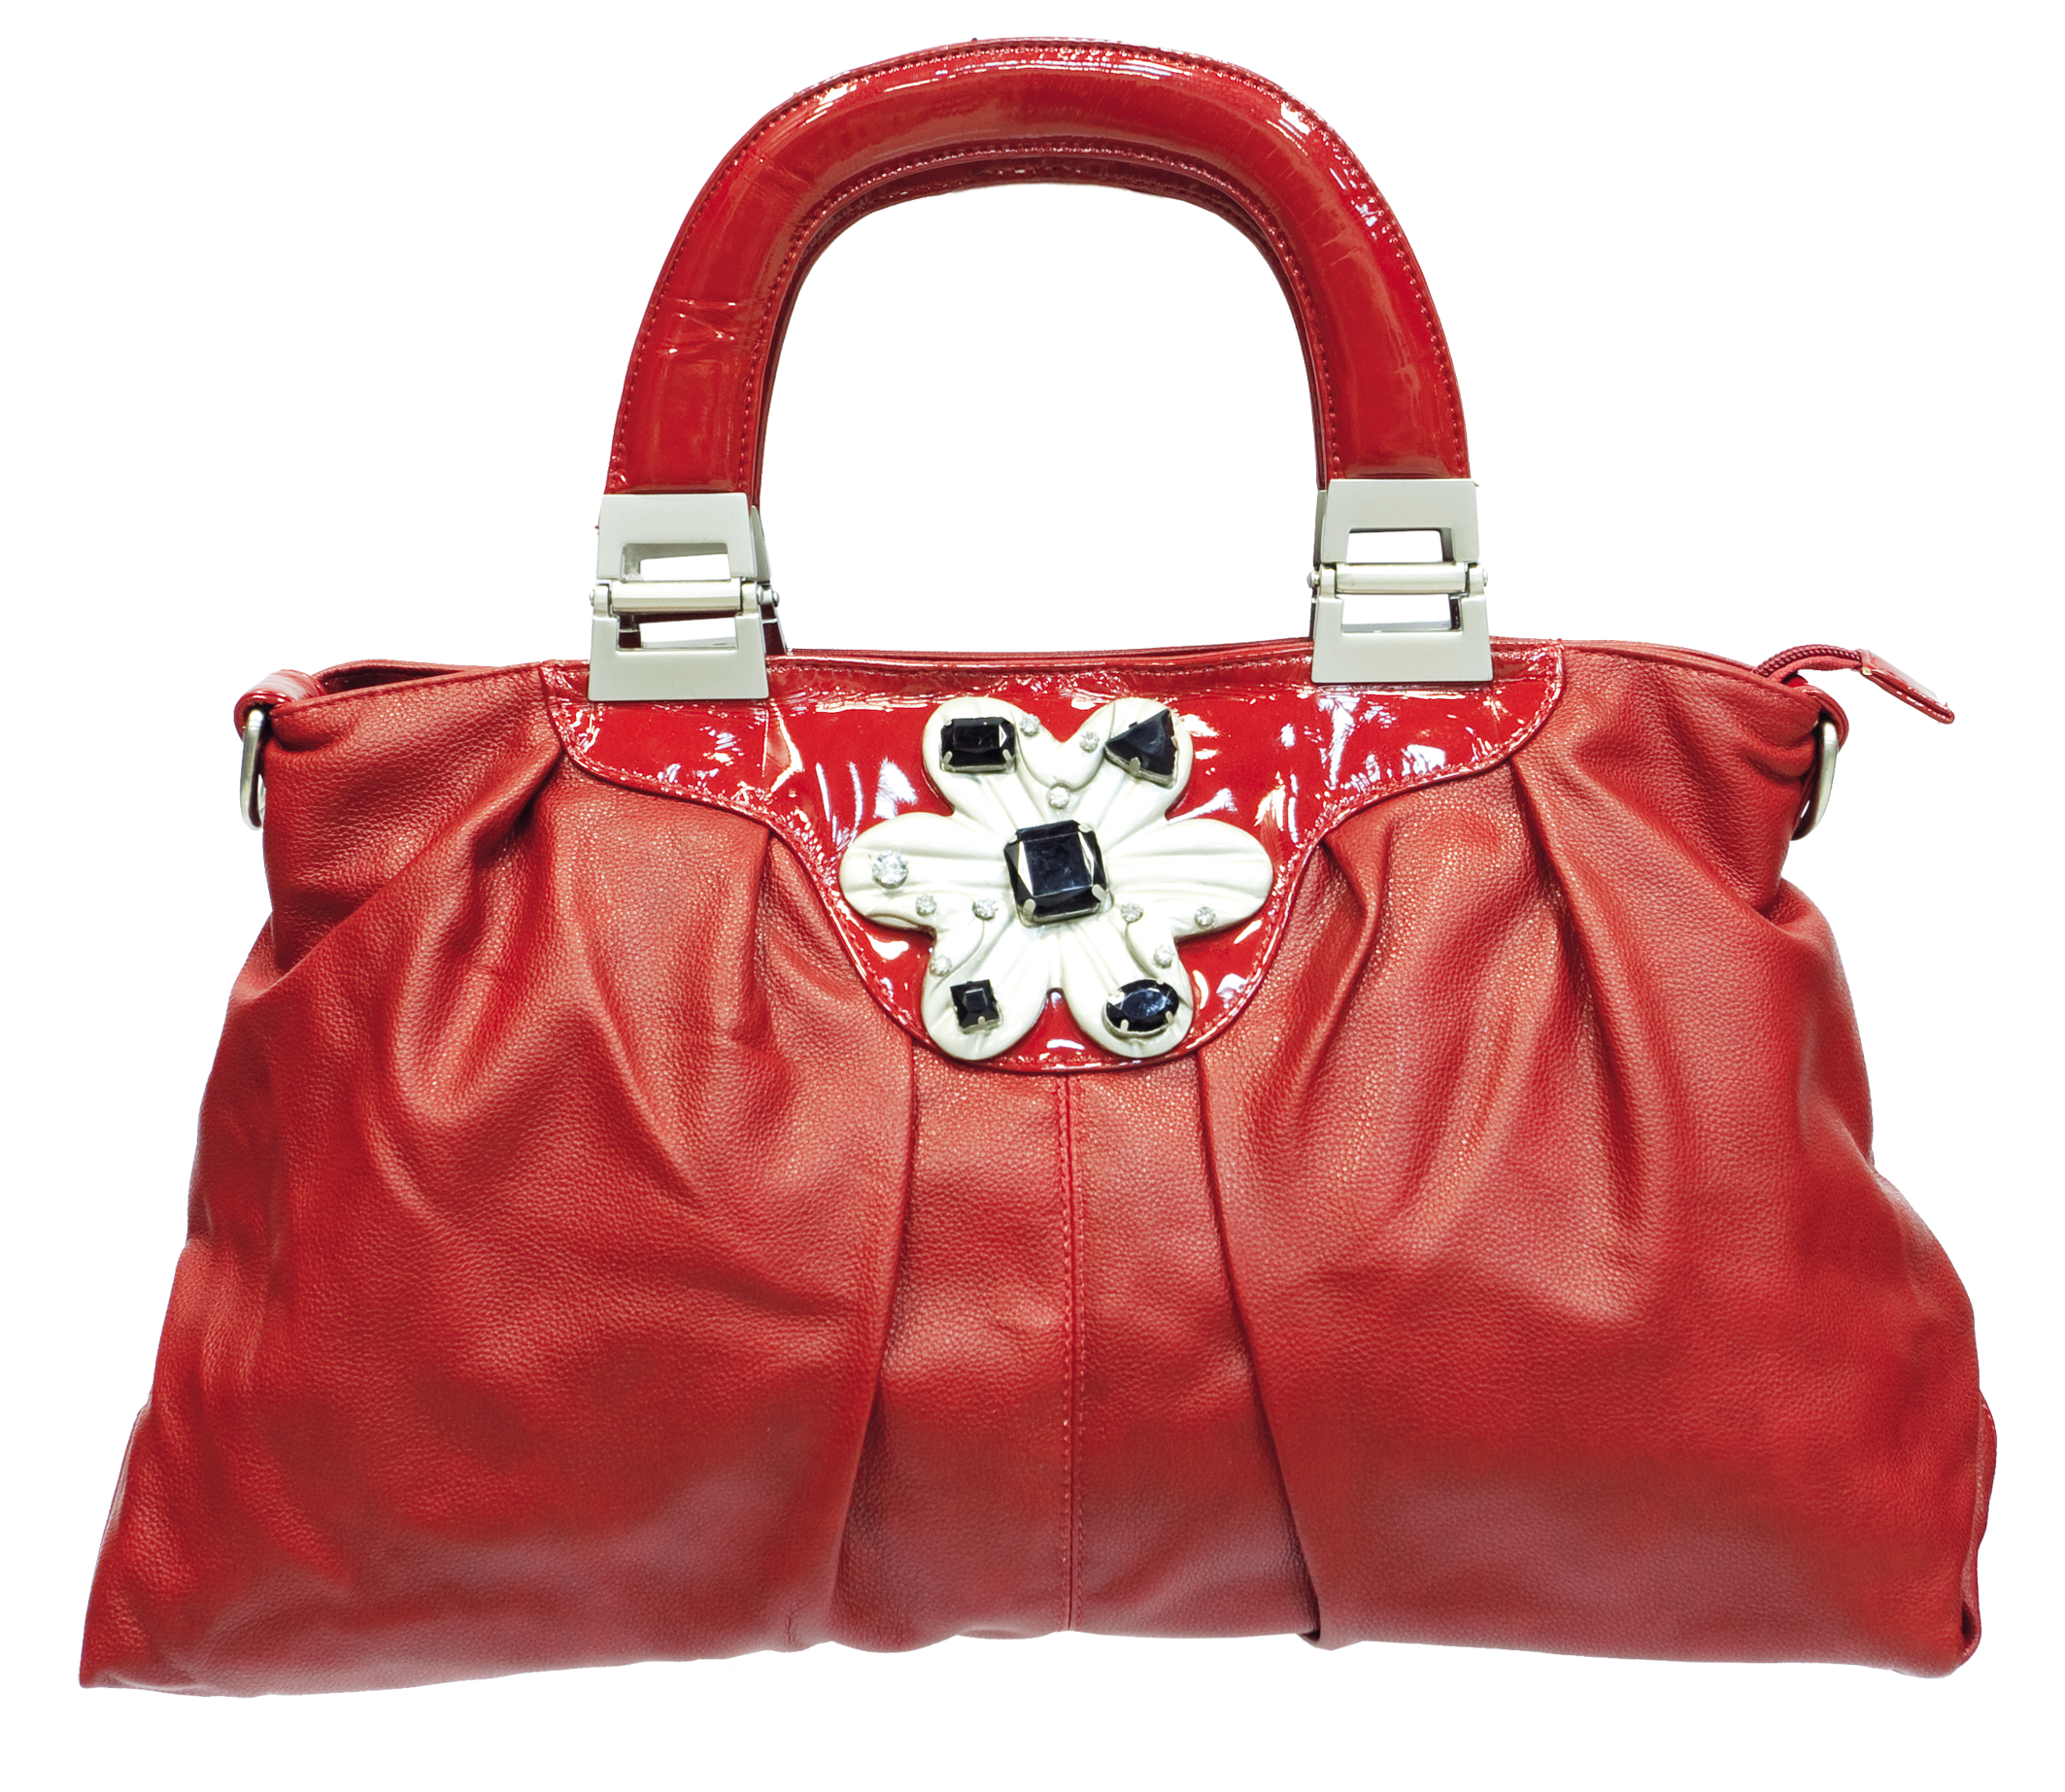 Clipart backpack red purse. Women bag png images